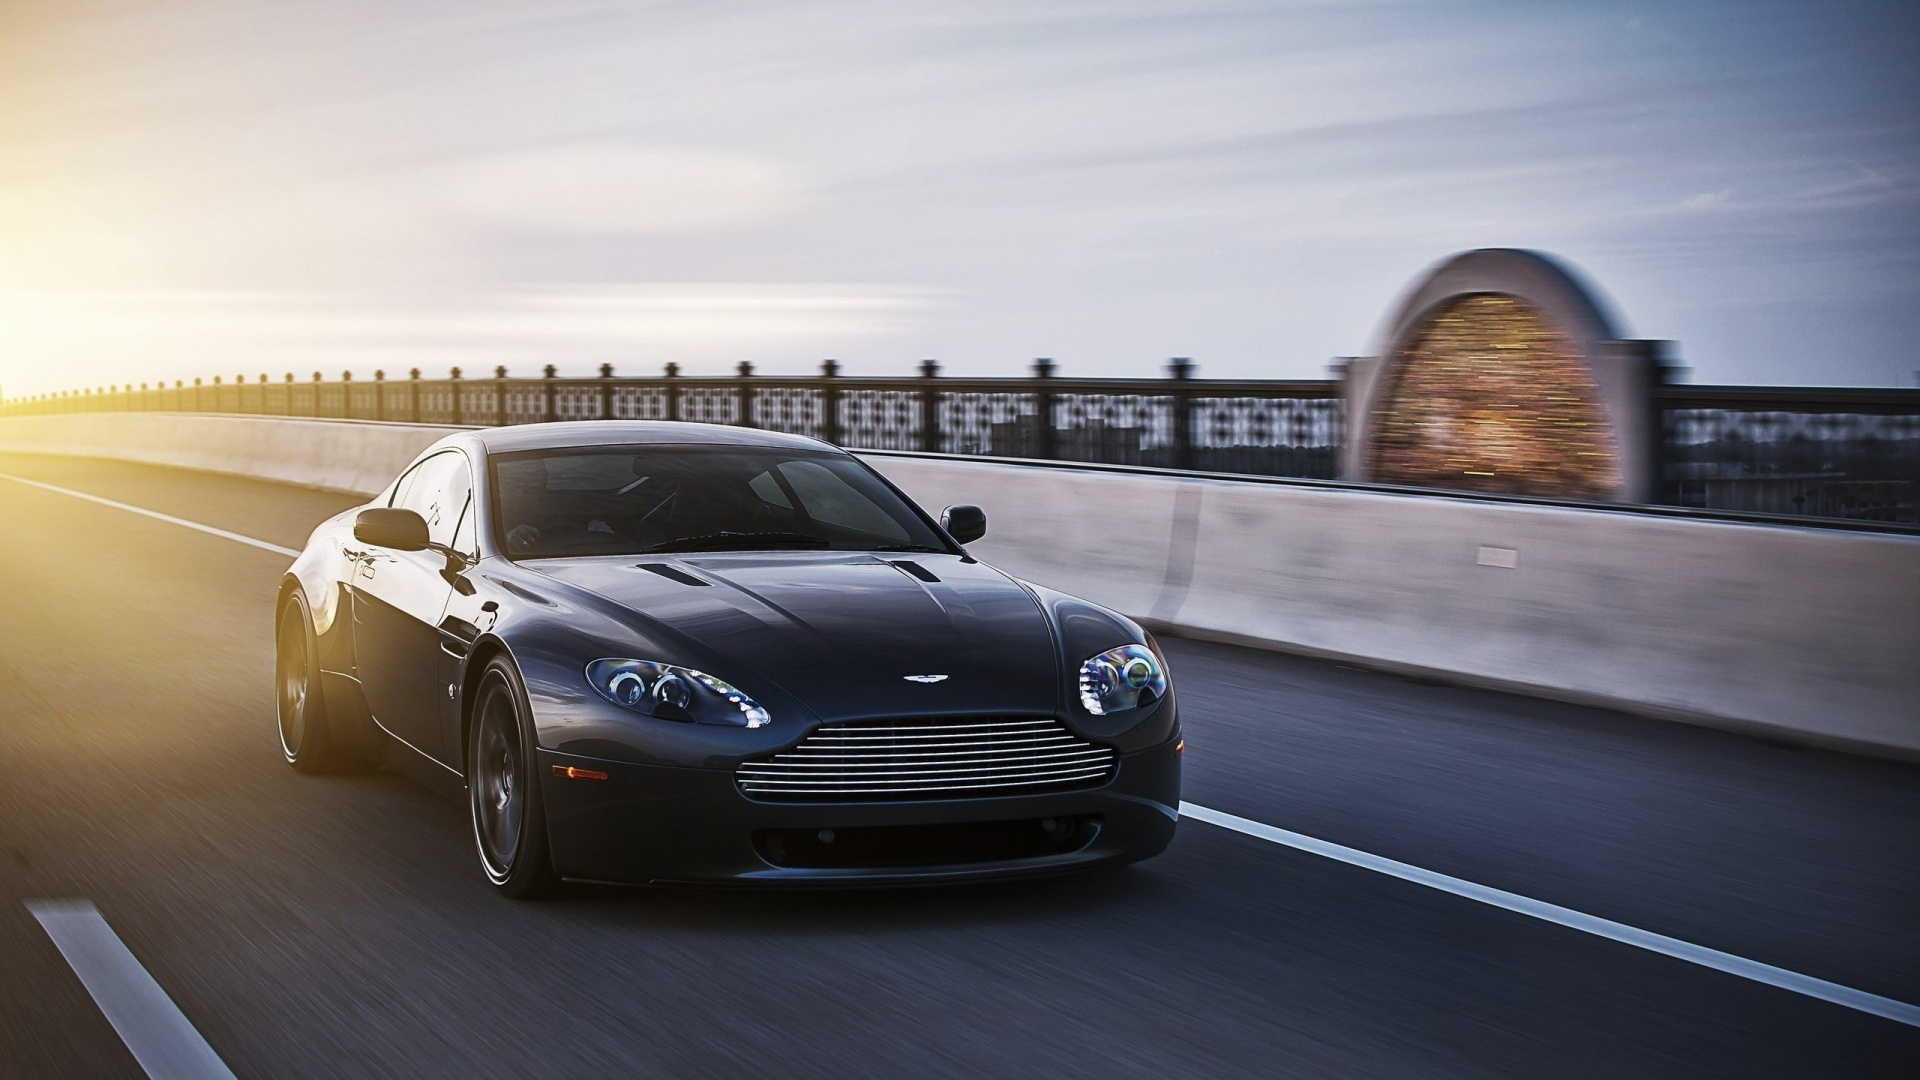 aston martin wallpaper 1920x1080. aston martin wallpaper 1920x1080